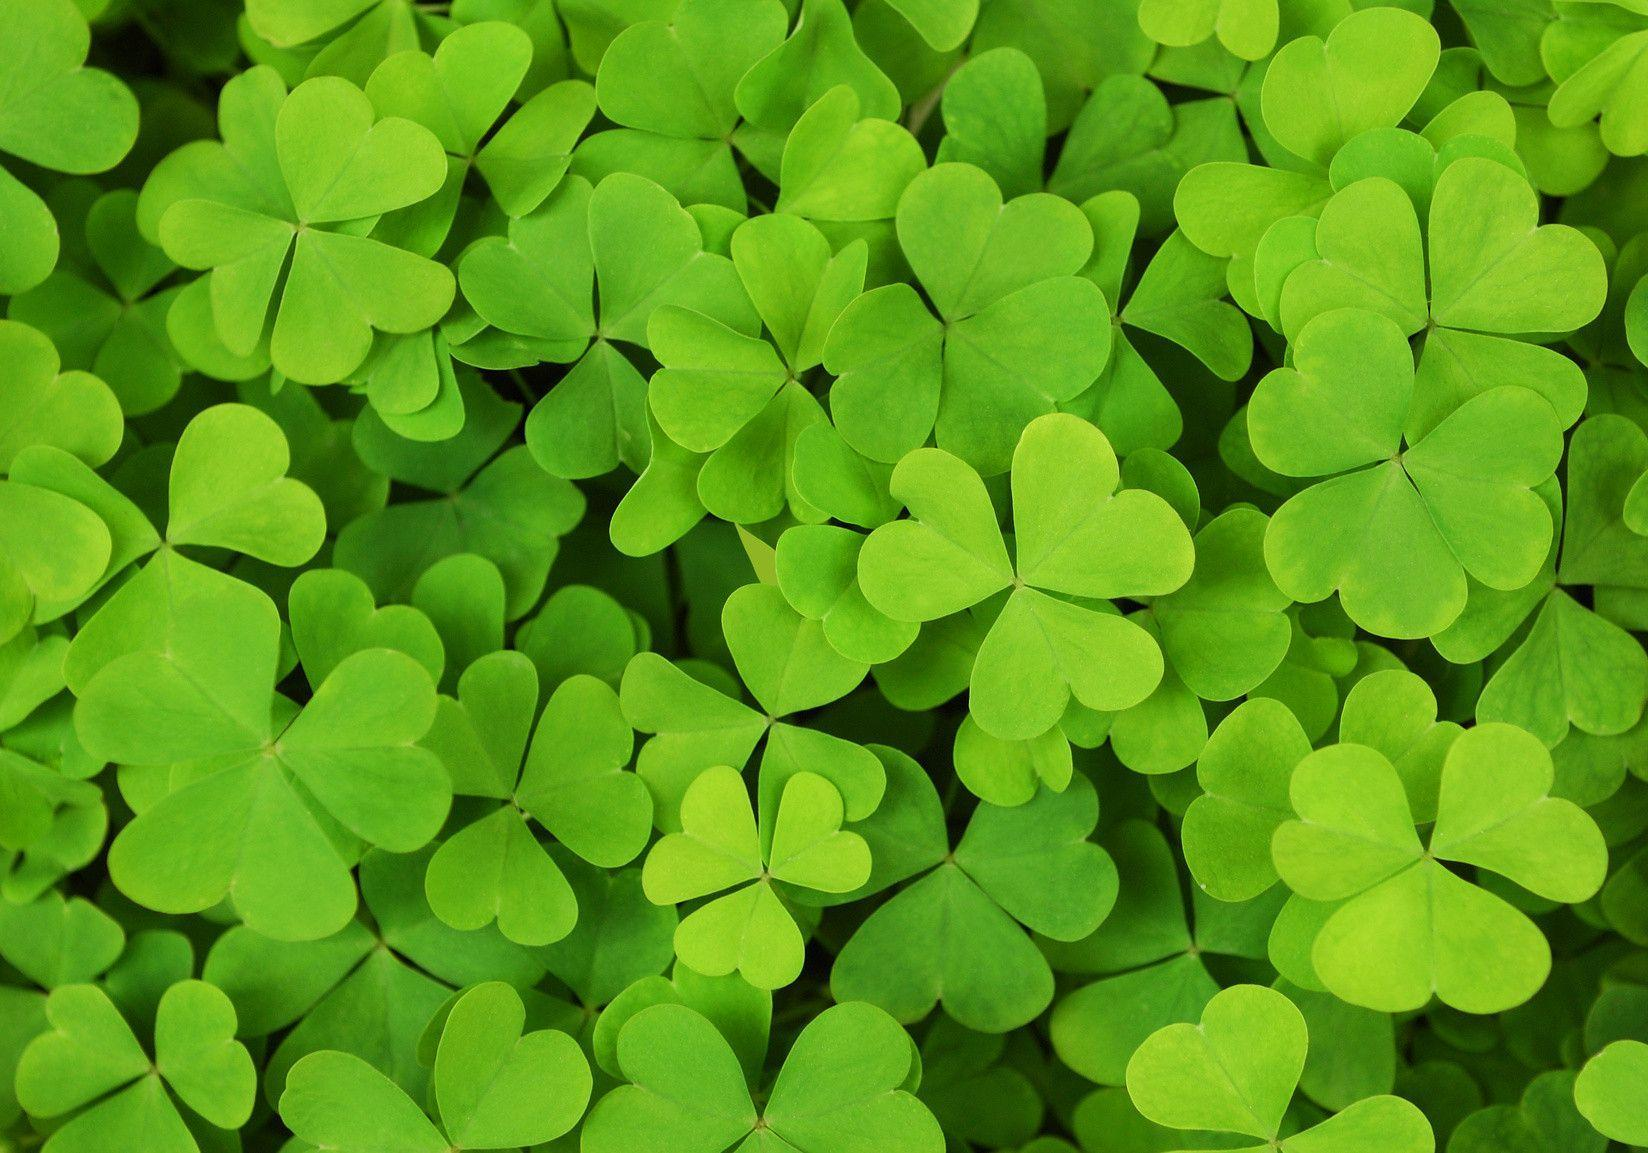 Wallpapers Shamrock - Wallpaper Cave